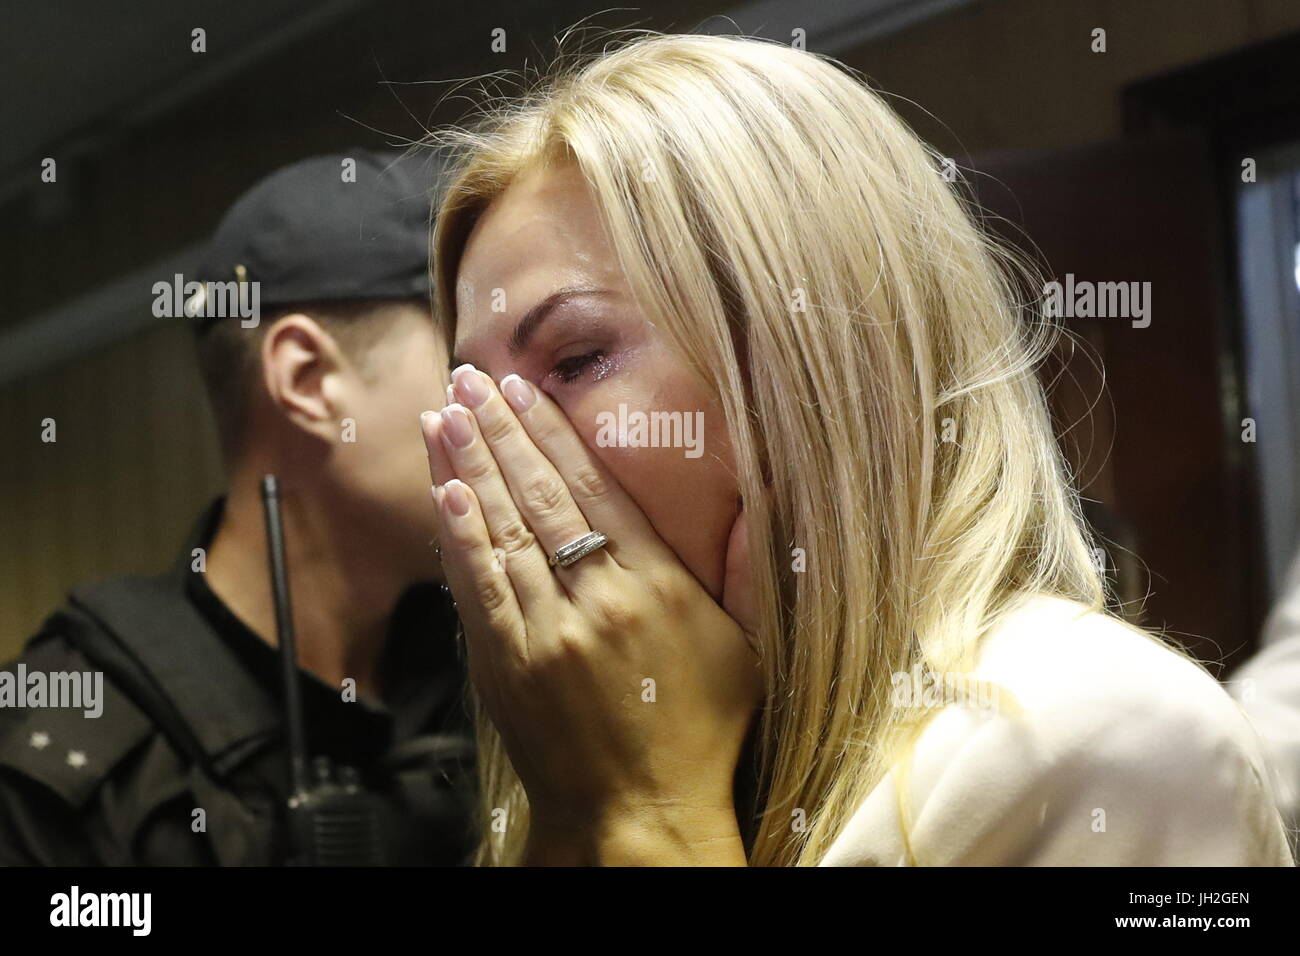 MOSCOW, RUSSIA – JULY 12, 2017: Russian real estate tycoon Sergei Polonsky's wife Olga Deripasko (C) reacts - Stock Image